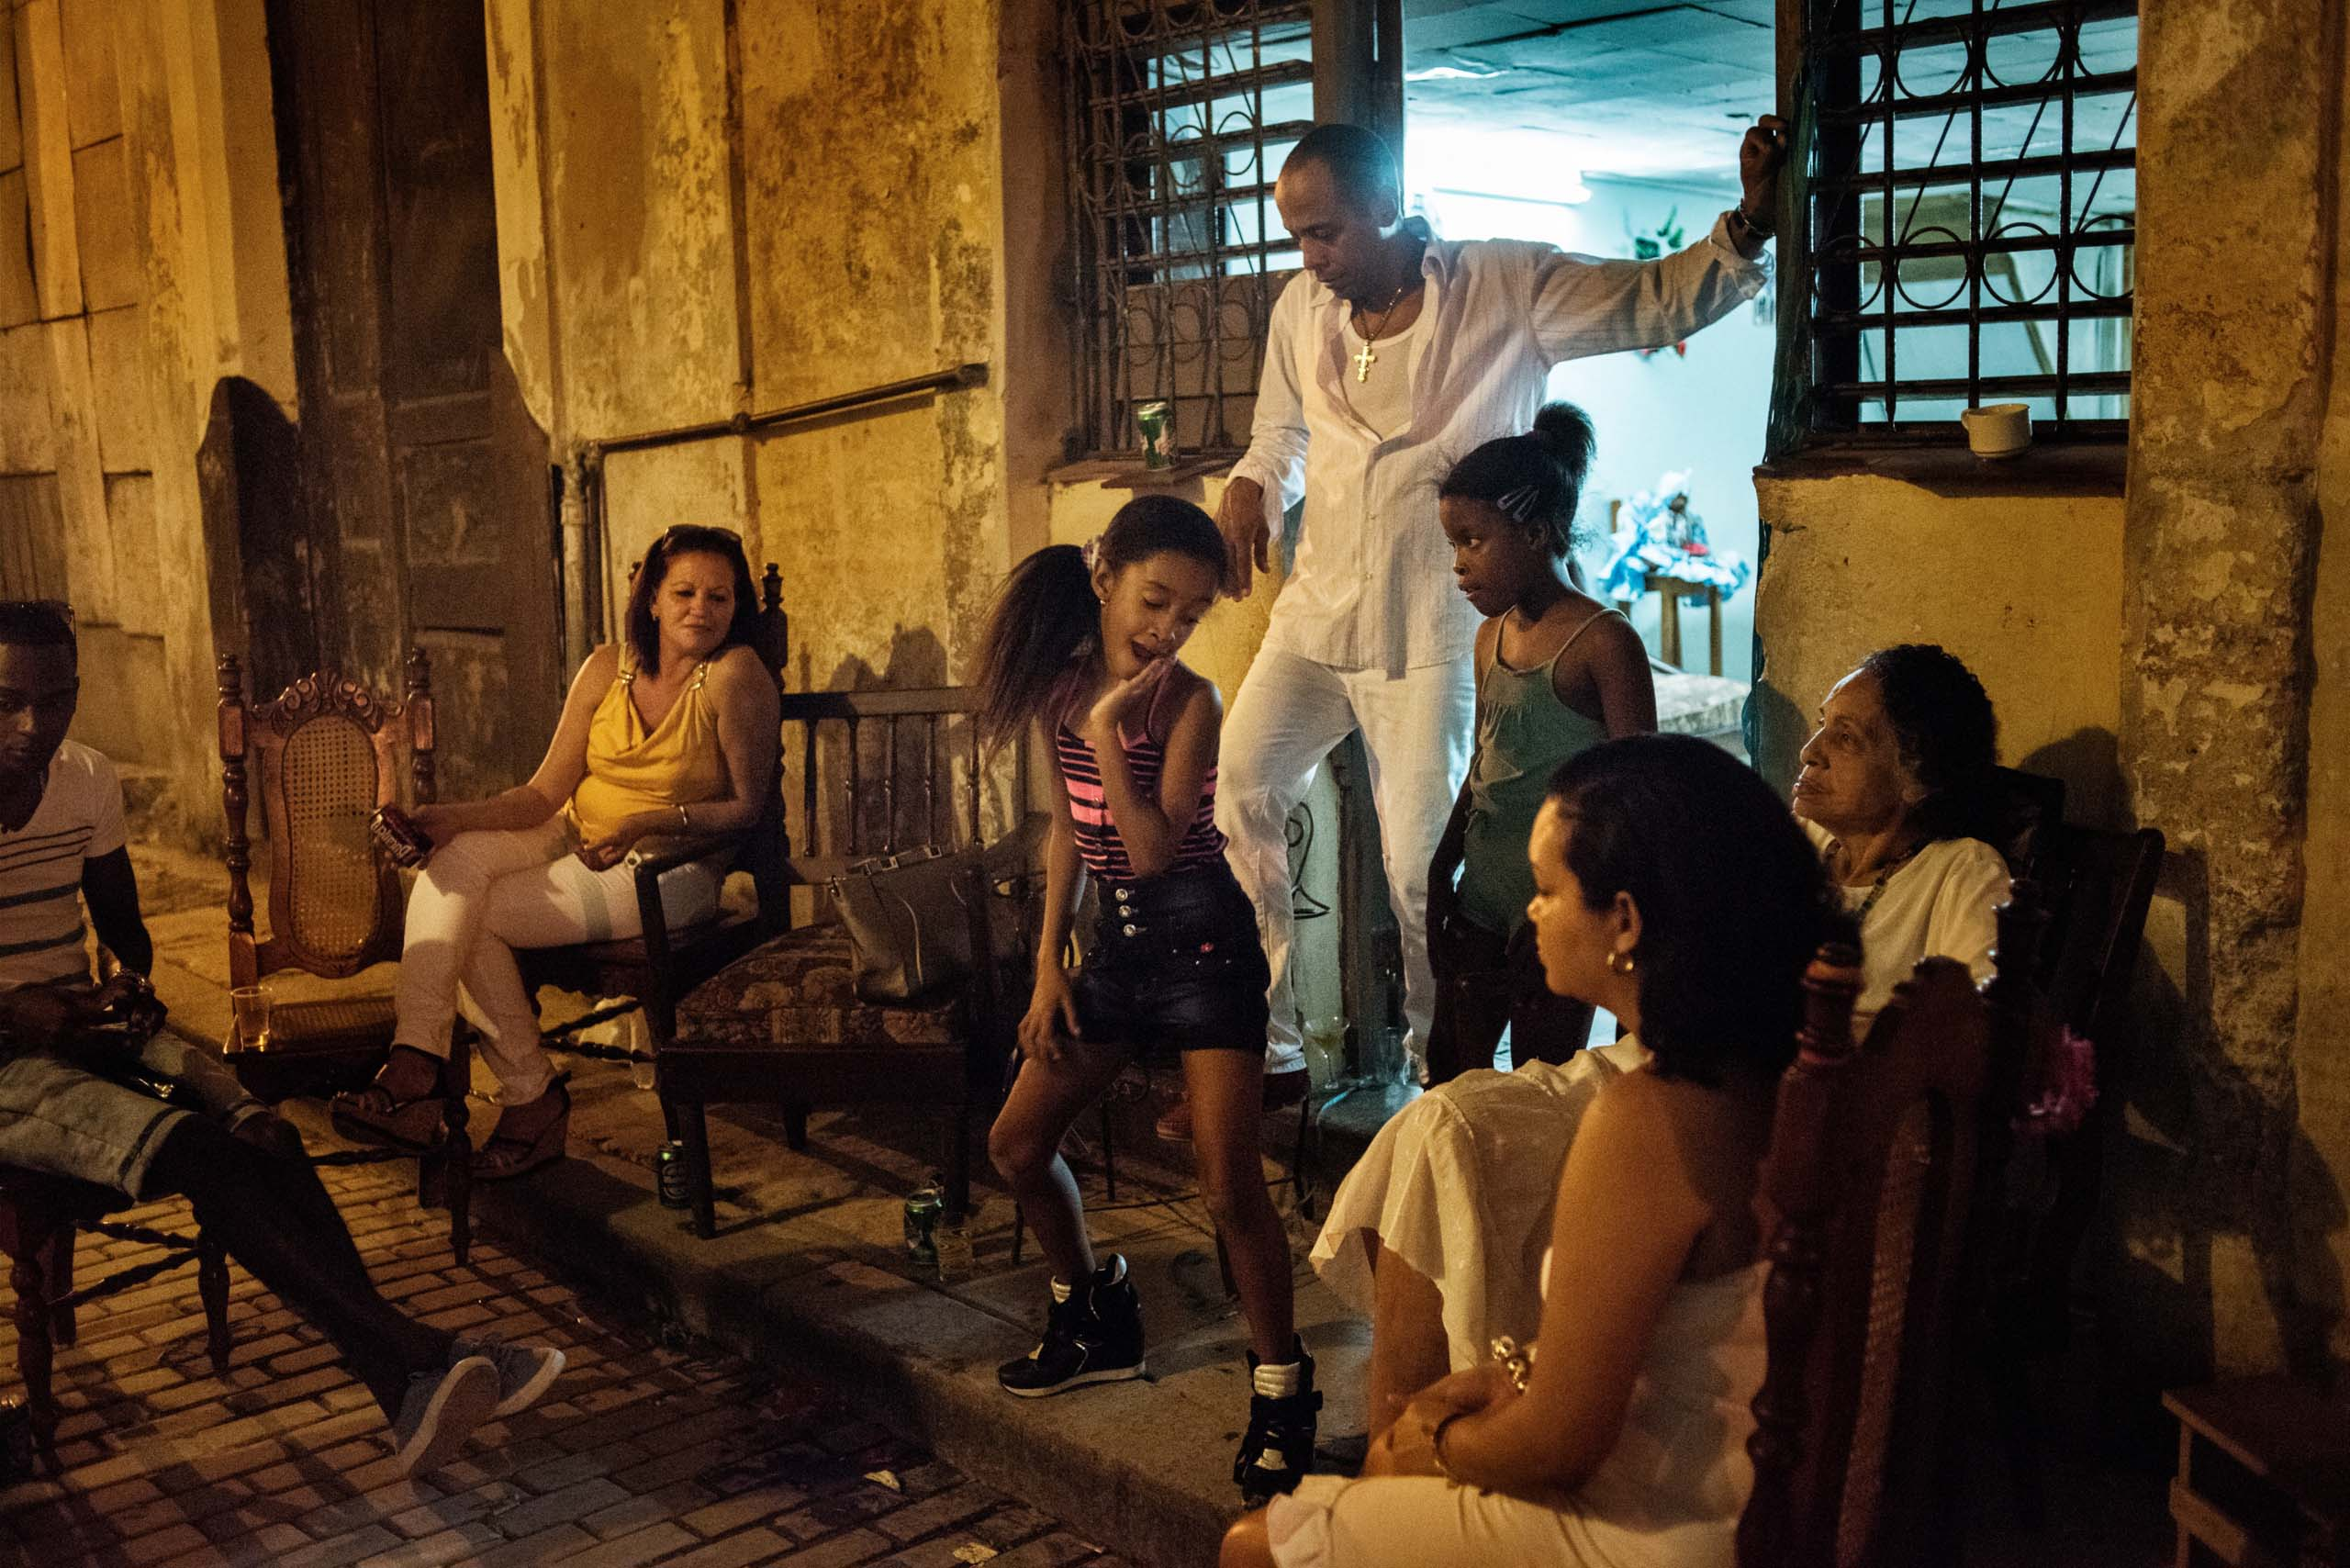 January 2015. A family gathers outside of their home in Havana, Cuba.